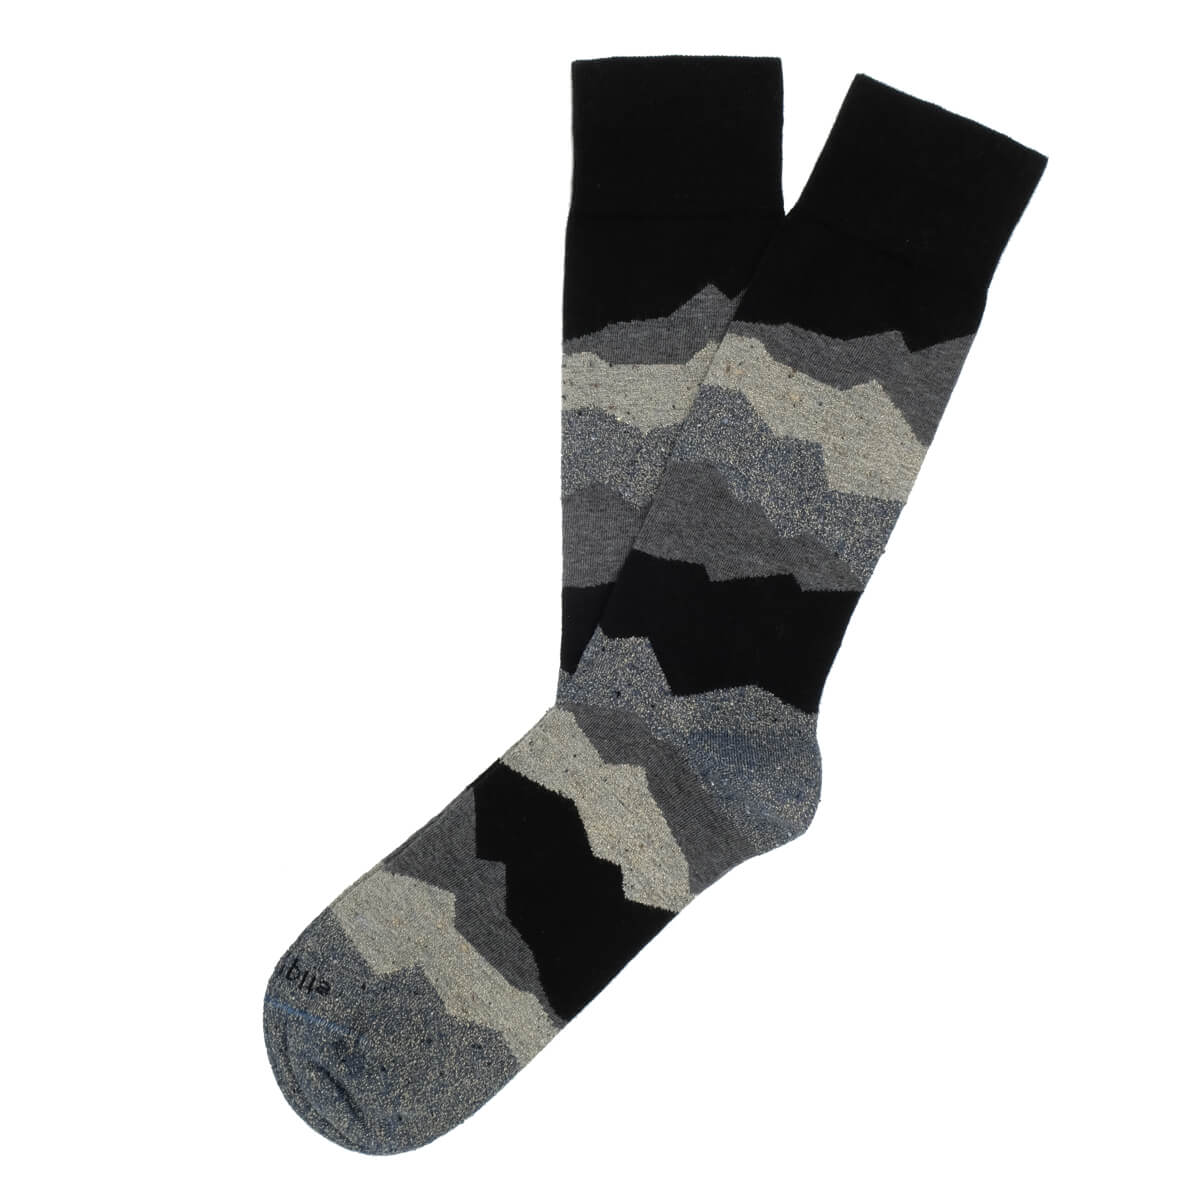 Mens Socks - Beat It Metallic Seismic Men's Socks - Black⎪Etiquette Clothiers